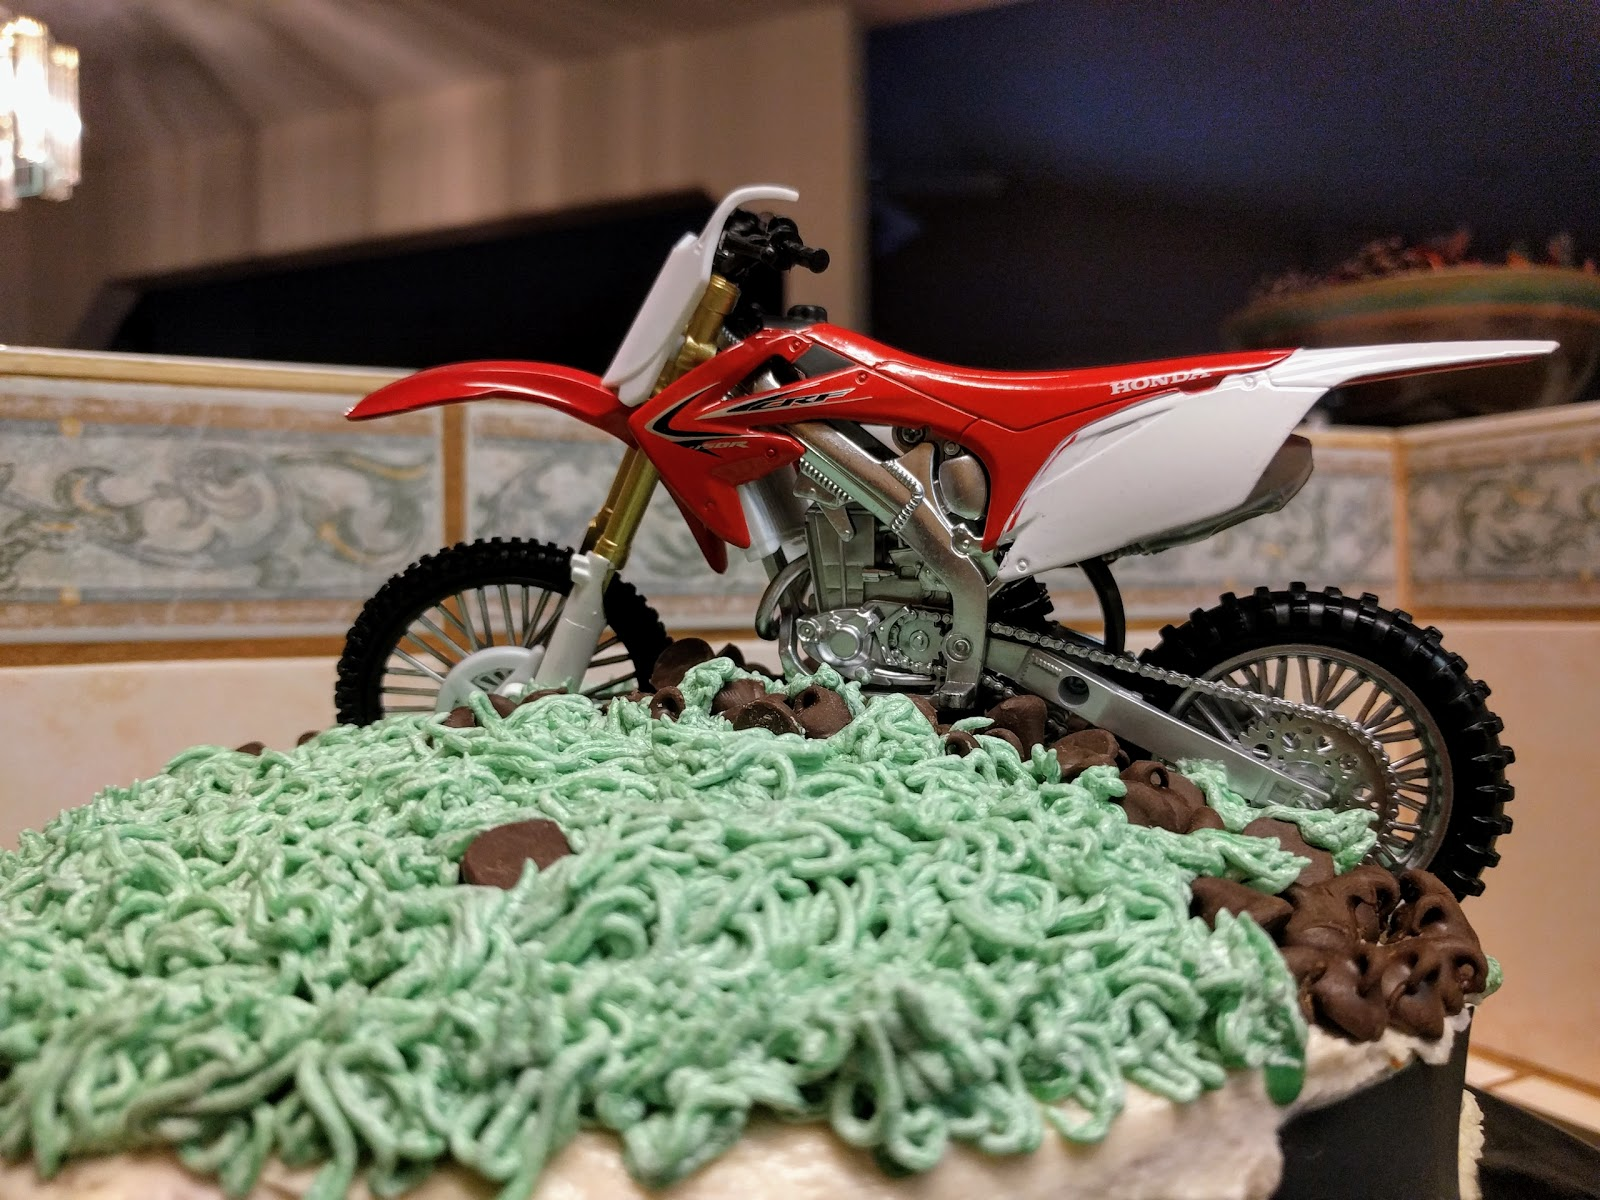 motorcycle on a cake